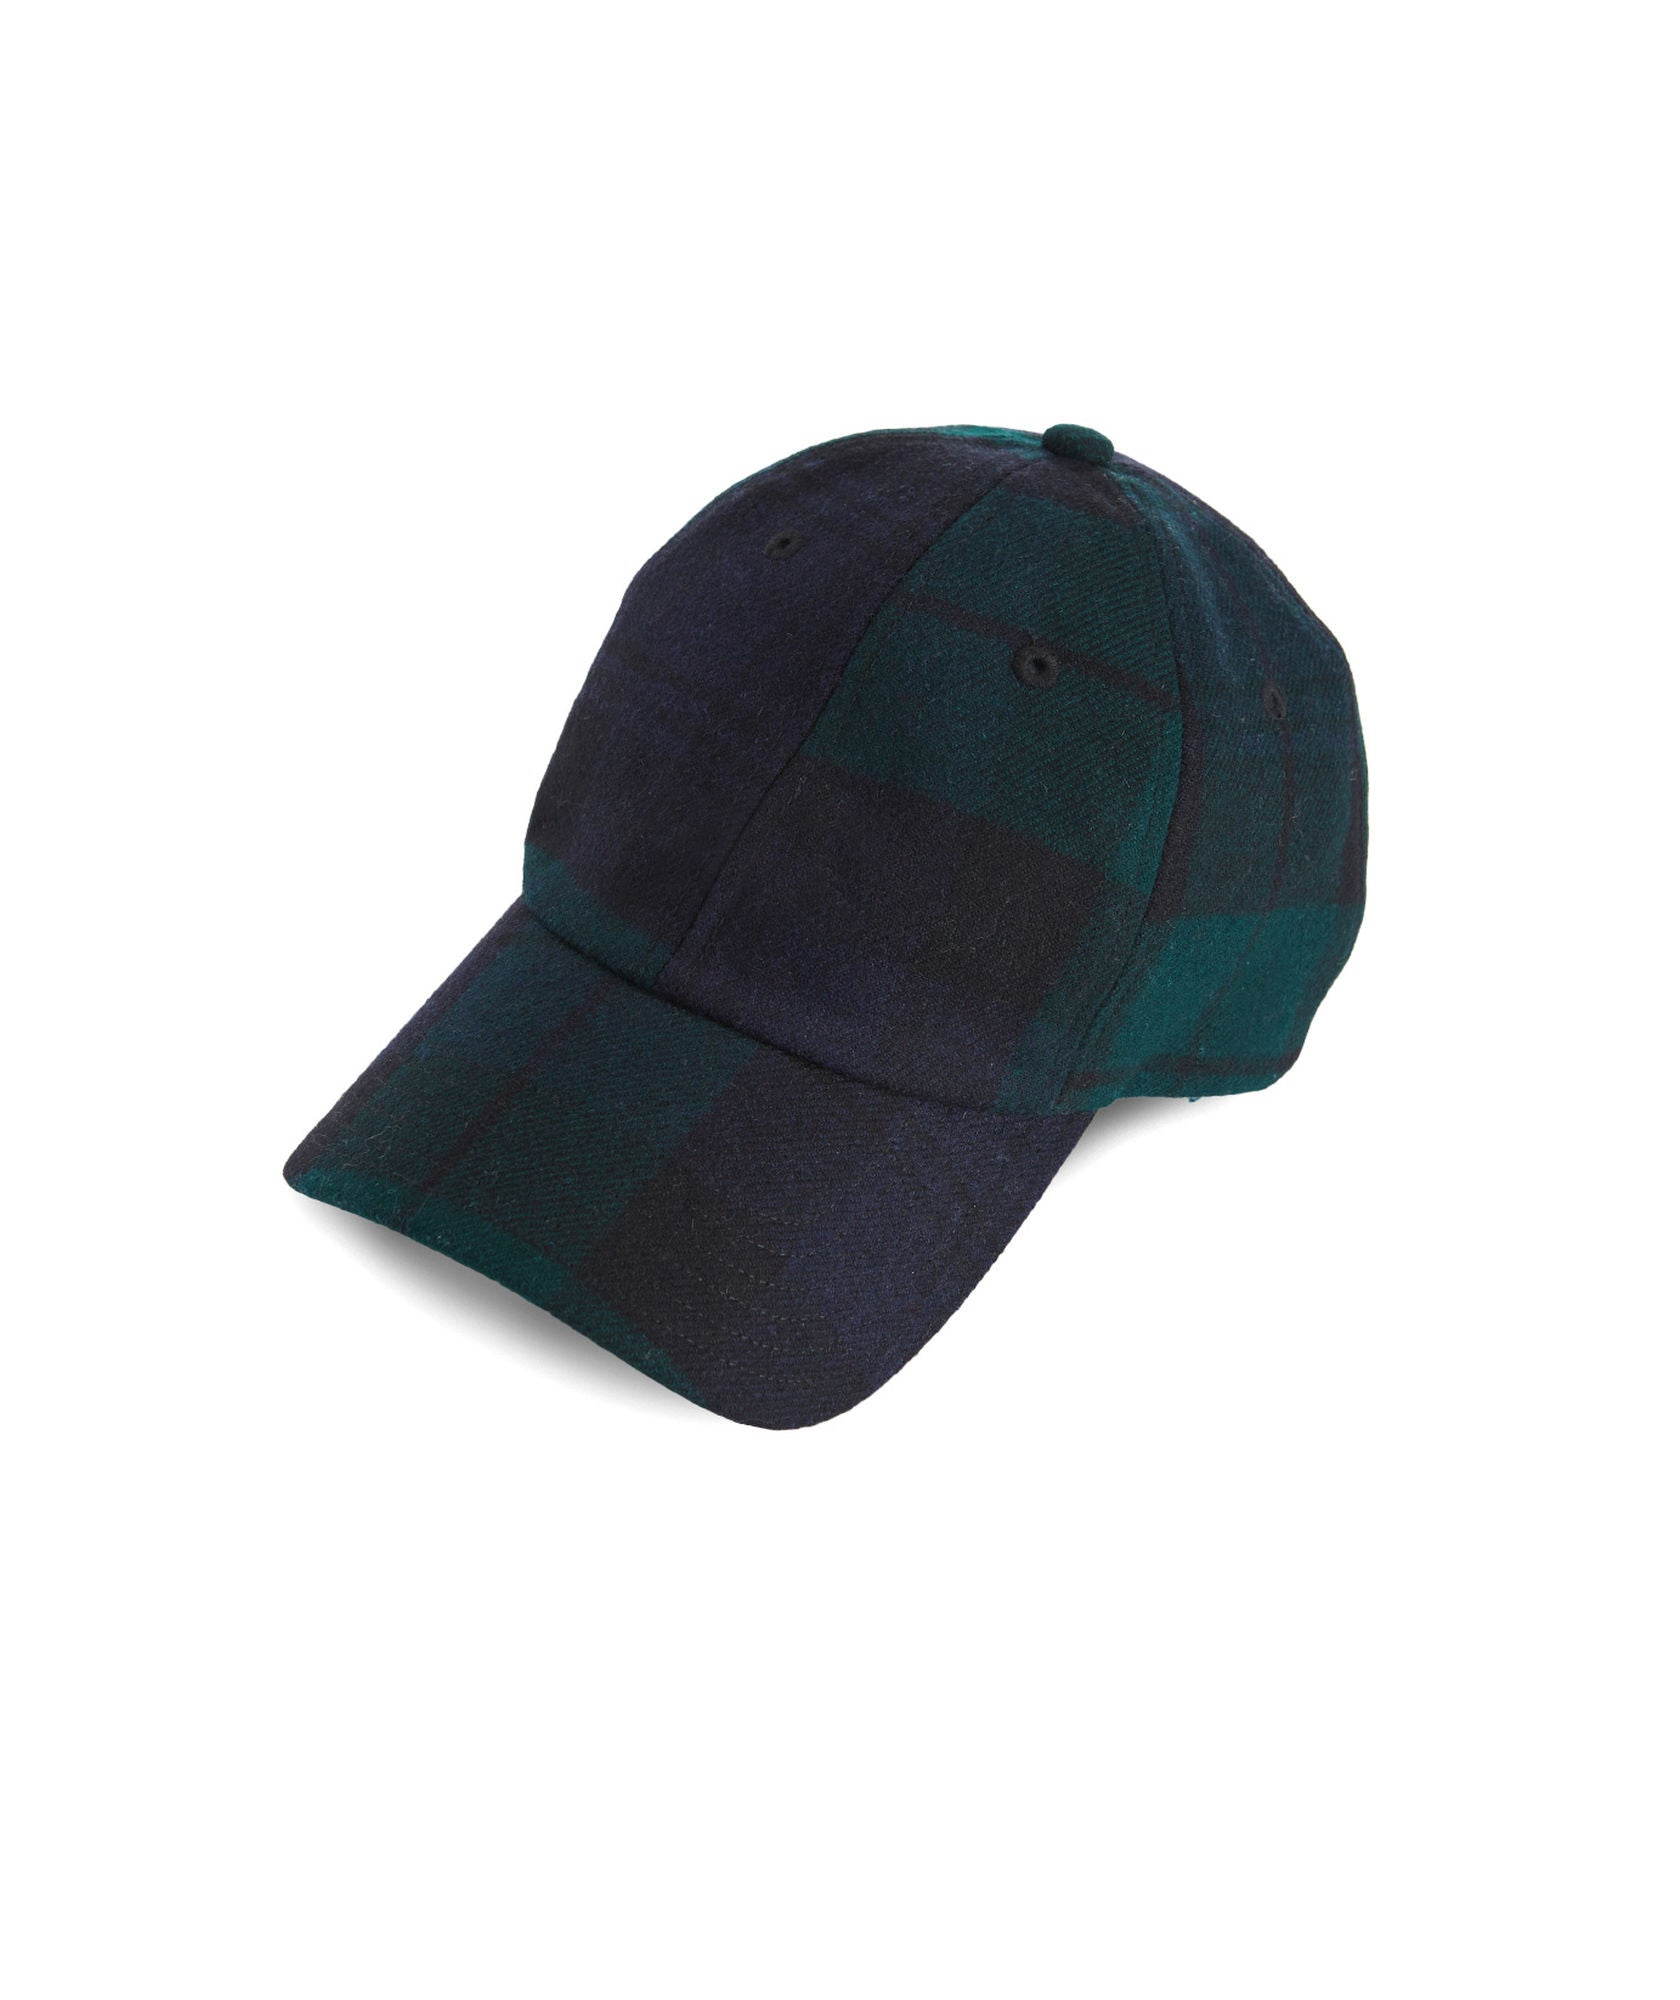 Front View Vineyard Vines Black Watch Baseball Hat in Charleston Green